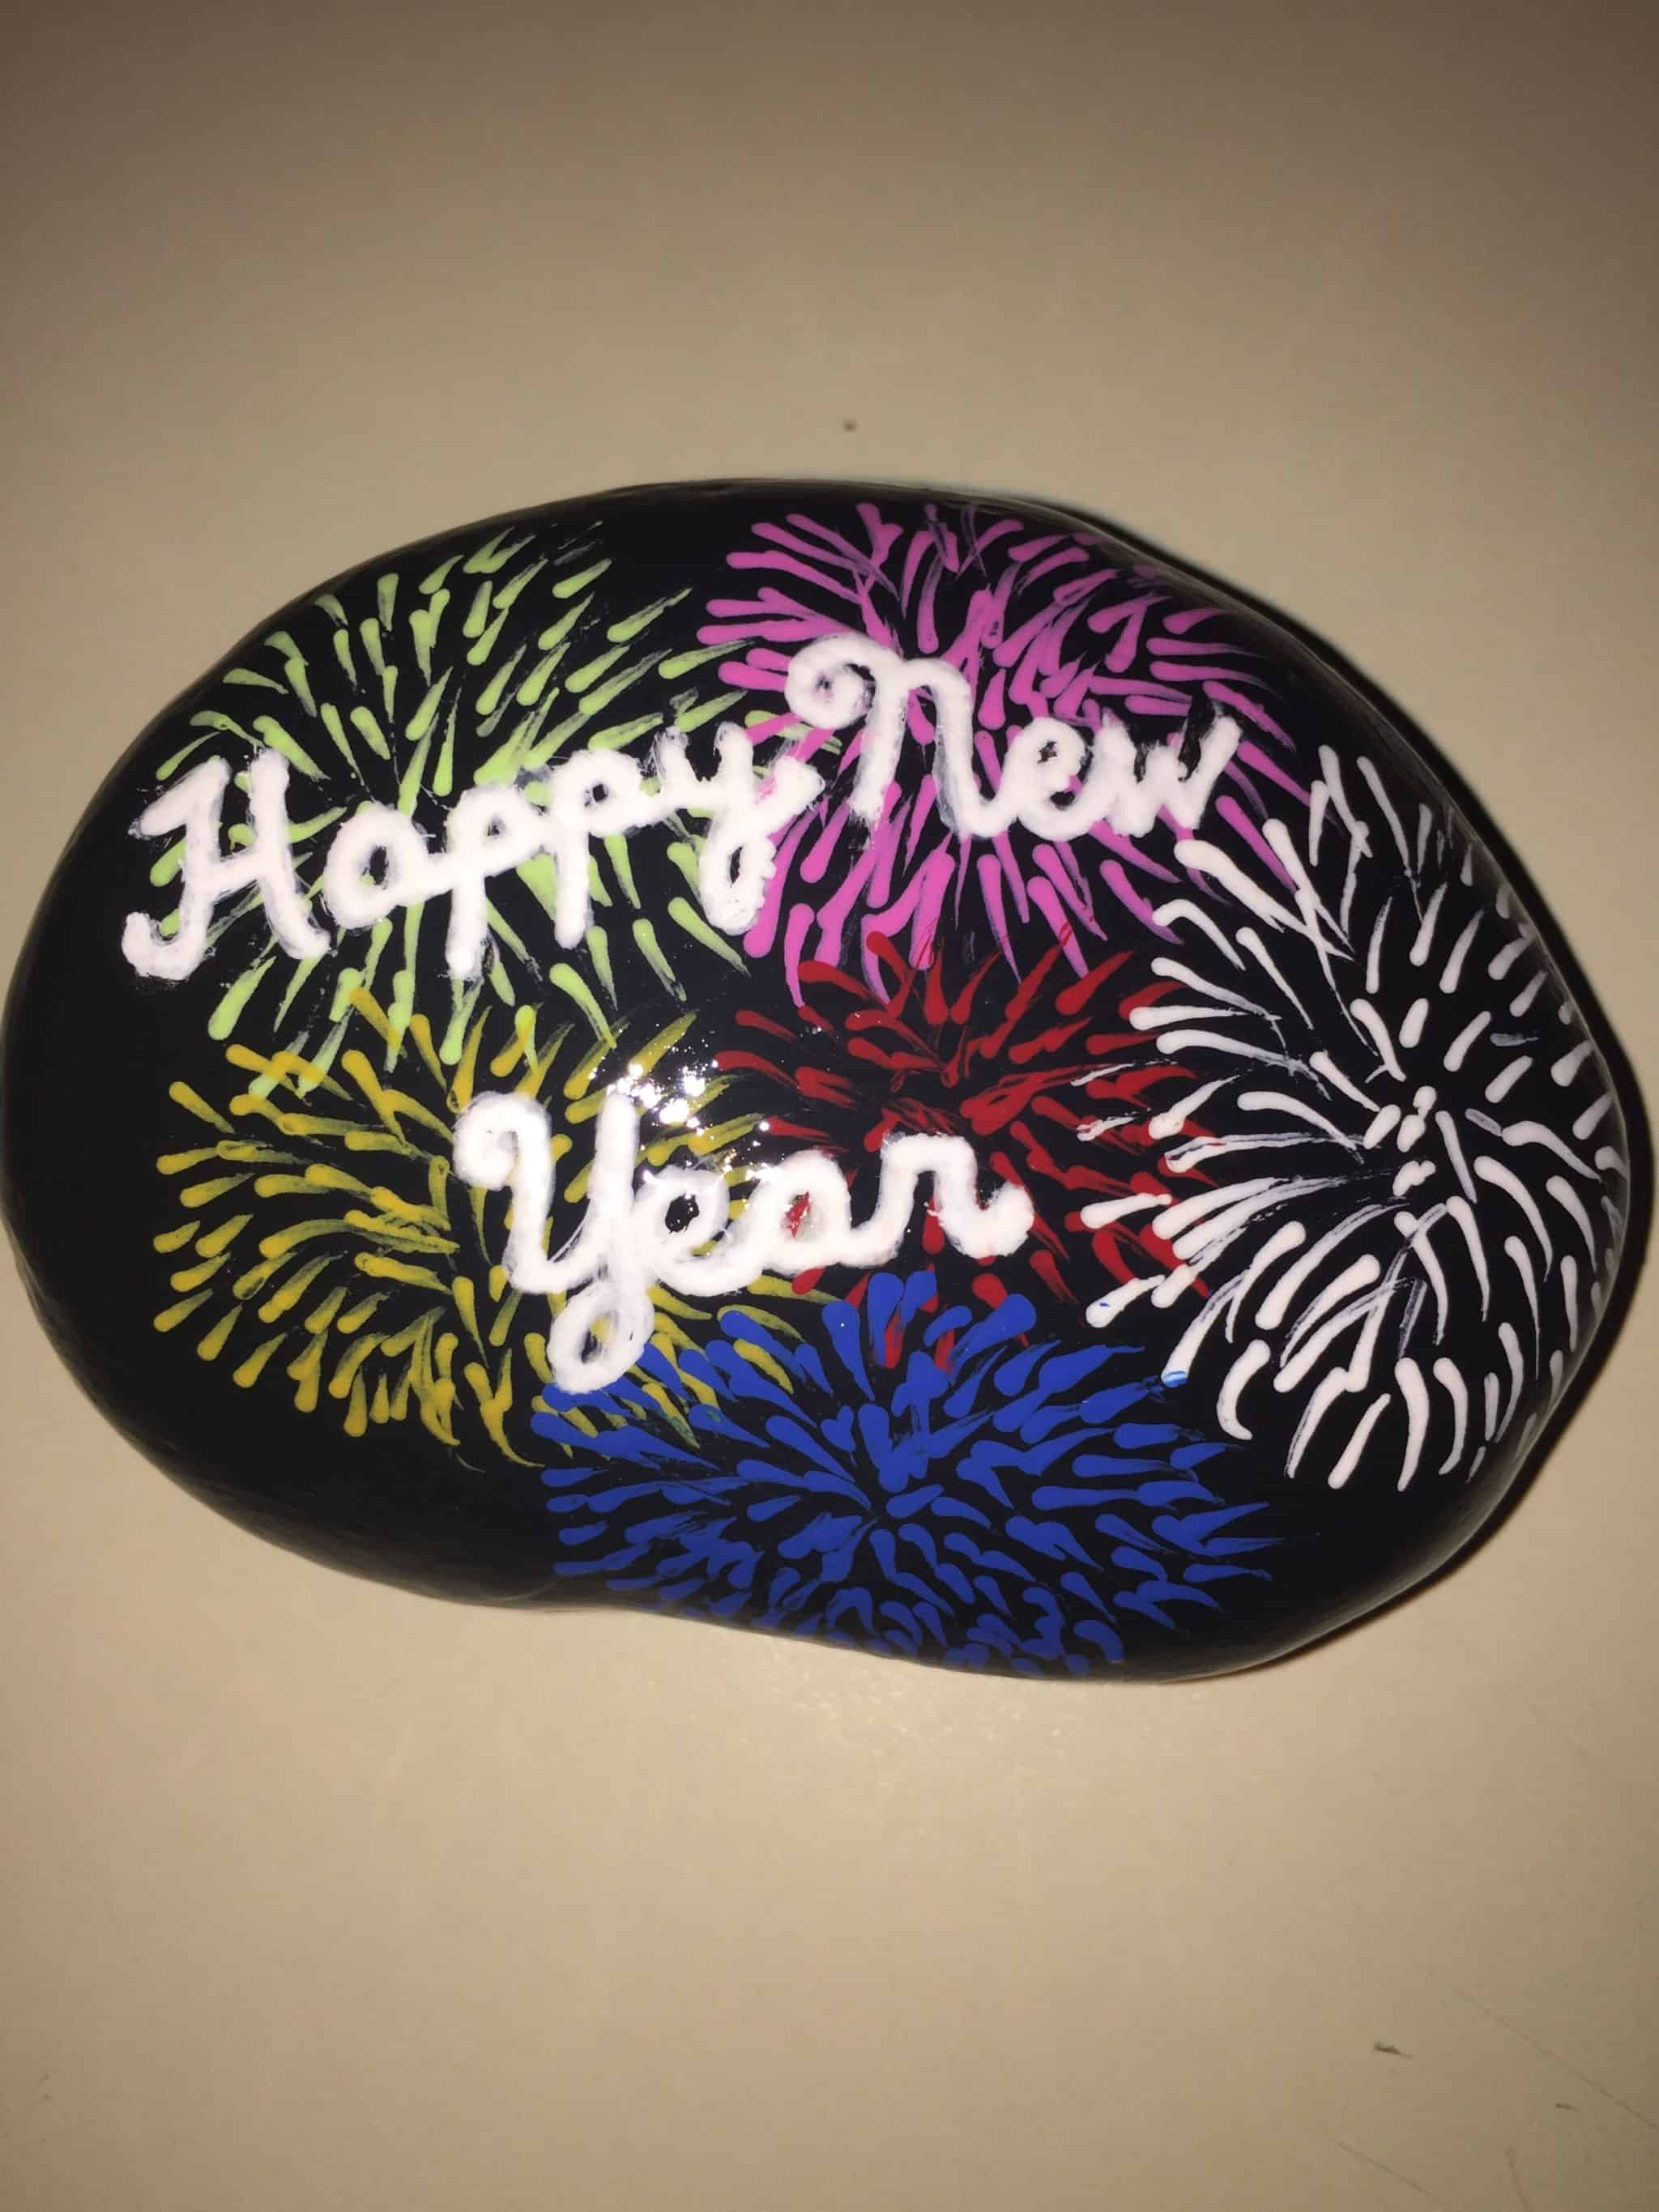 Oval rock painted with red, blue, white fireworks and the words Happy New Year